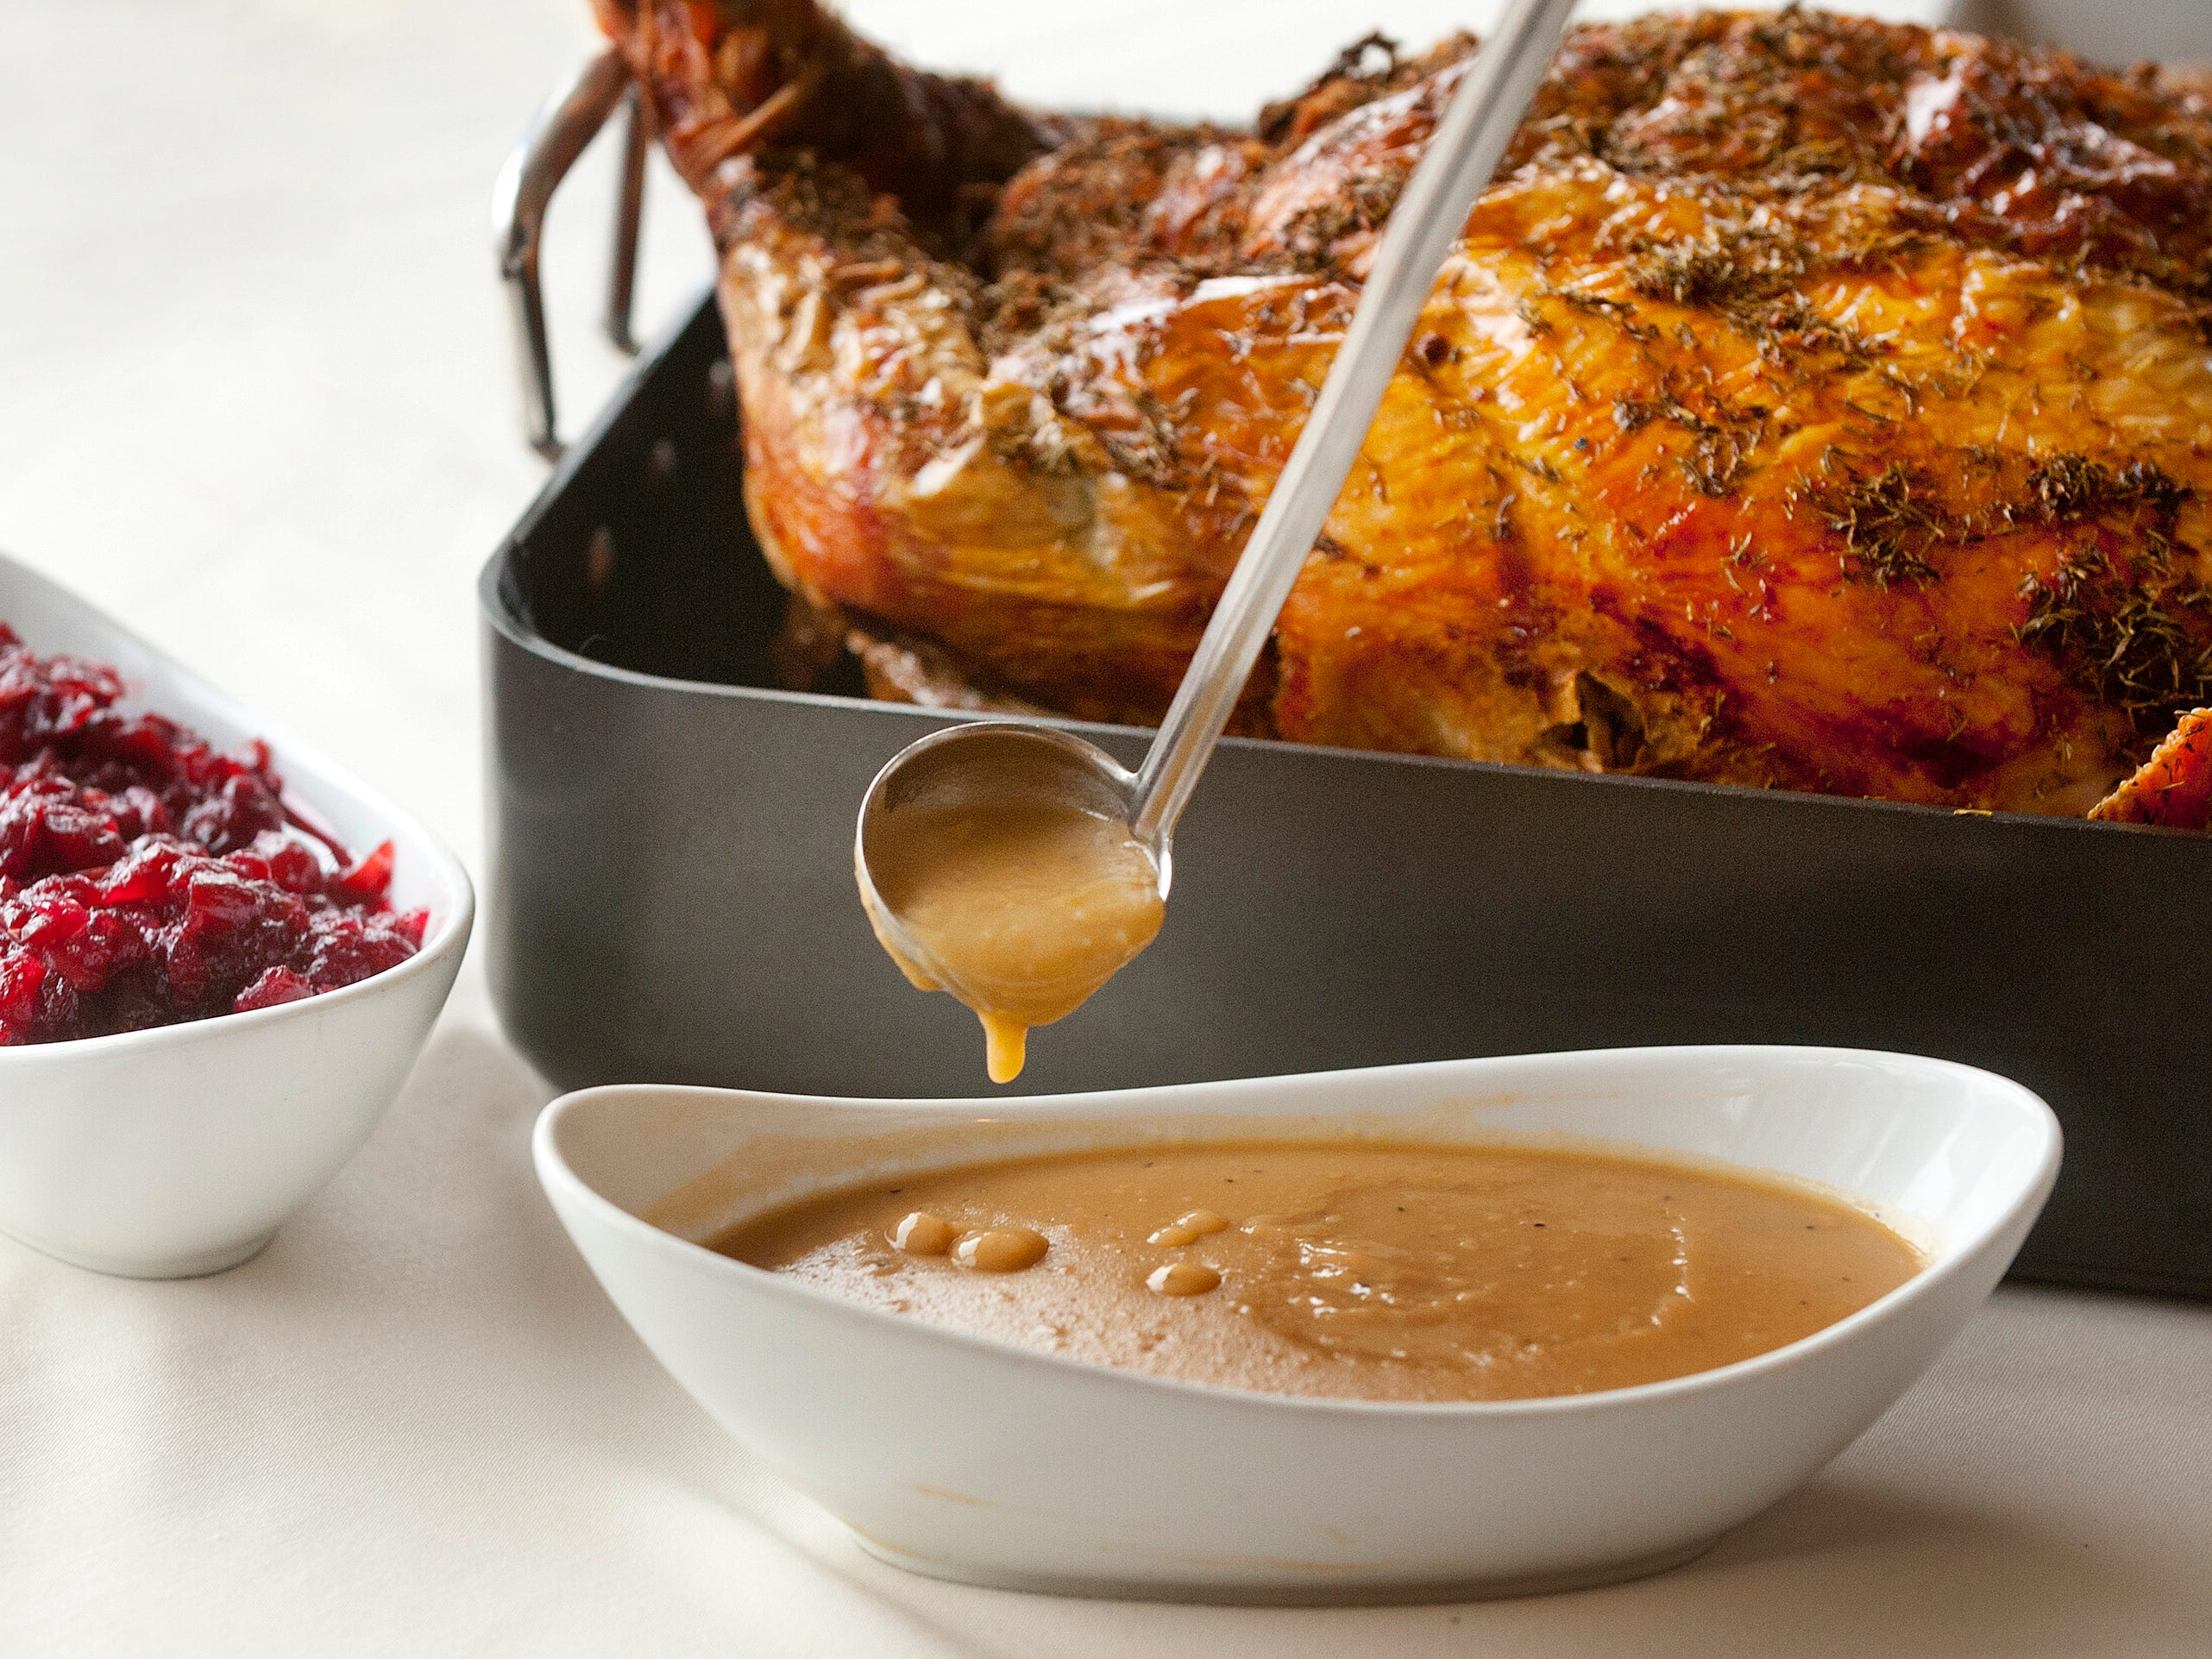 Varanese restaurant owner and executive chef John Varanese's turducken gravy is made with all three turducken bones (turkey, duck and chicken) that have been cooked for hours in an oven then the juices are thickened with flour to make a brown roux. November 14, 2018